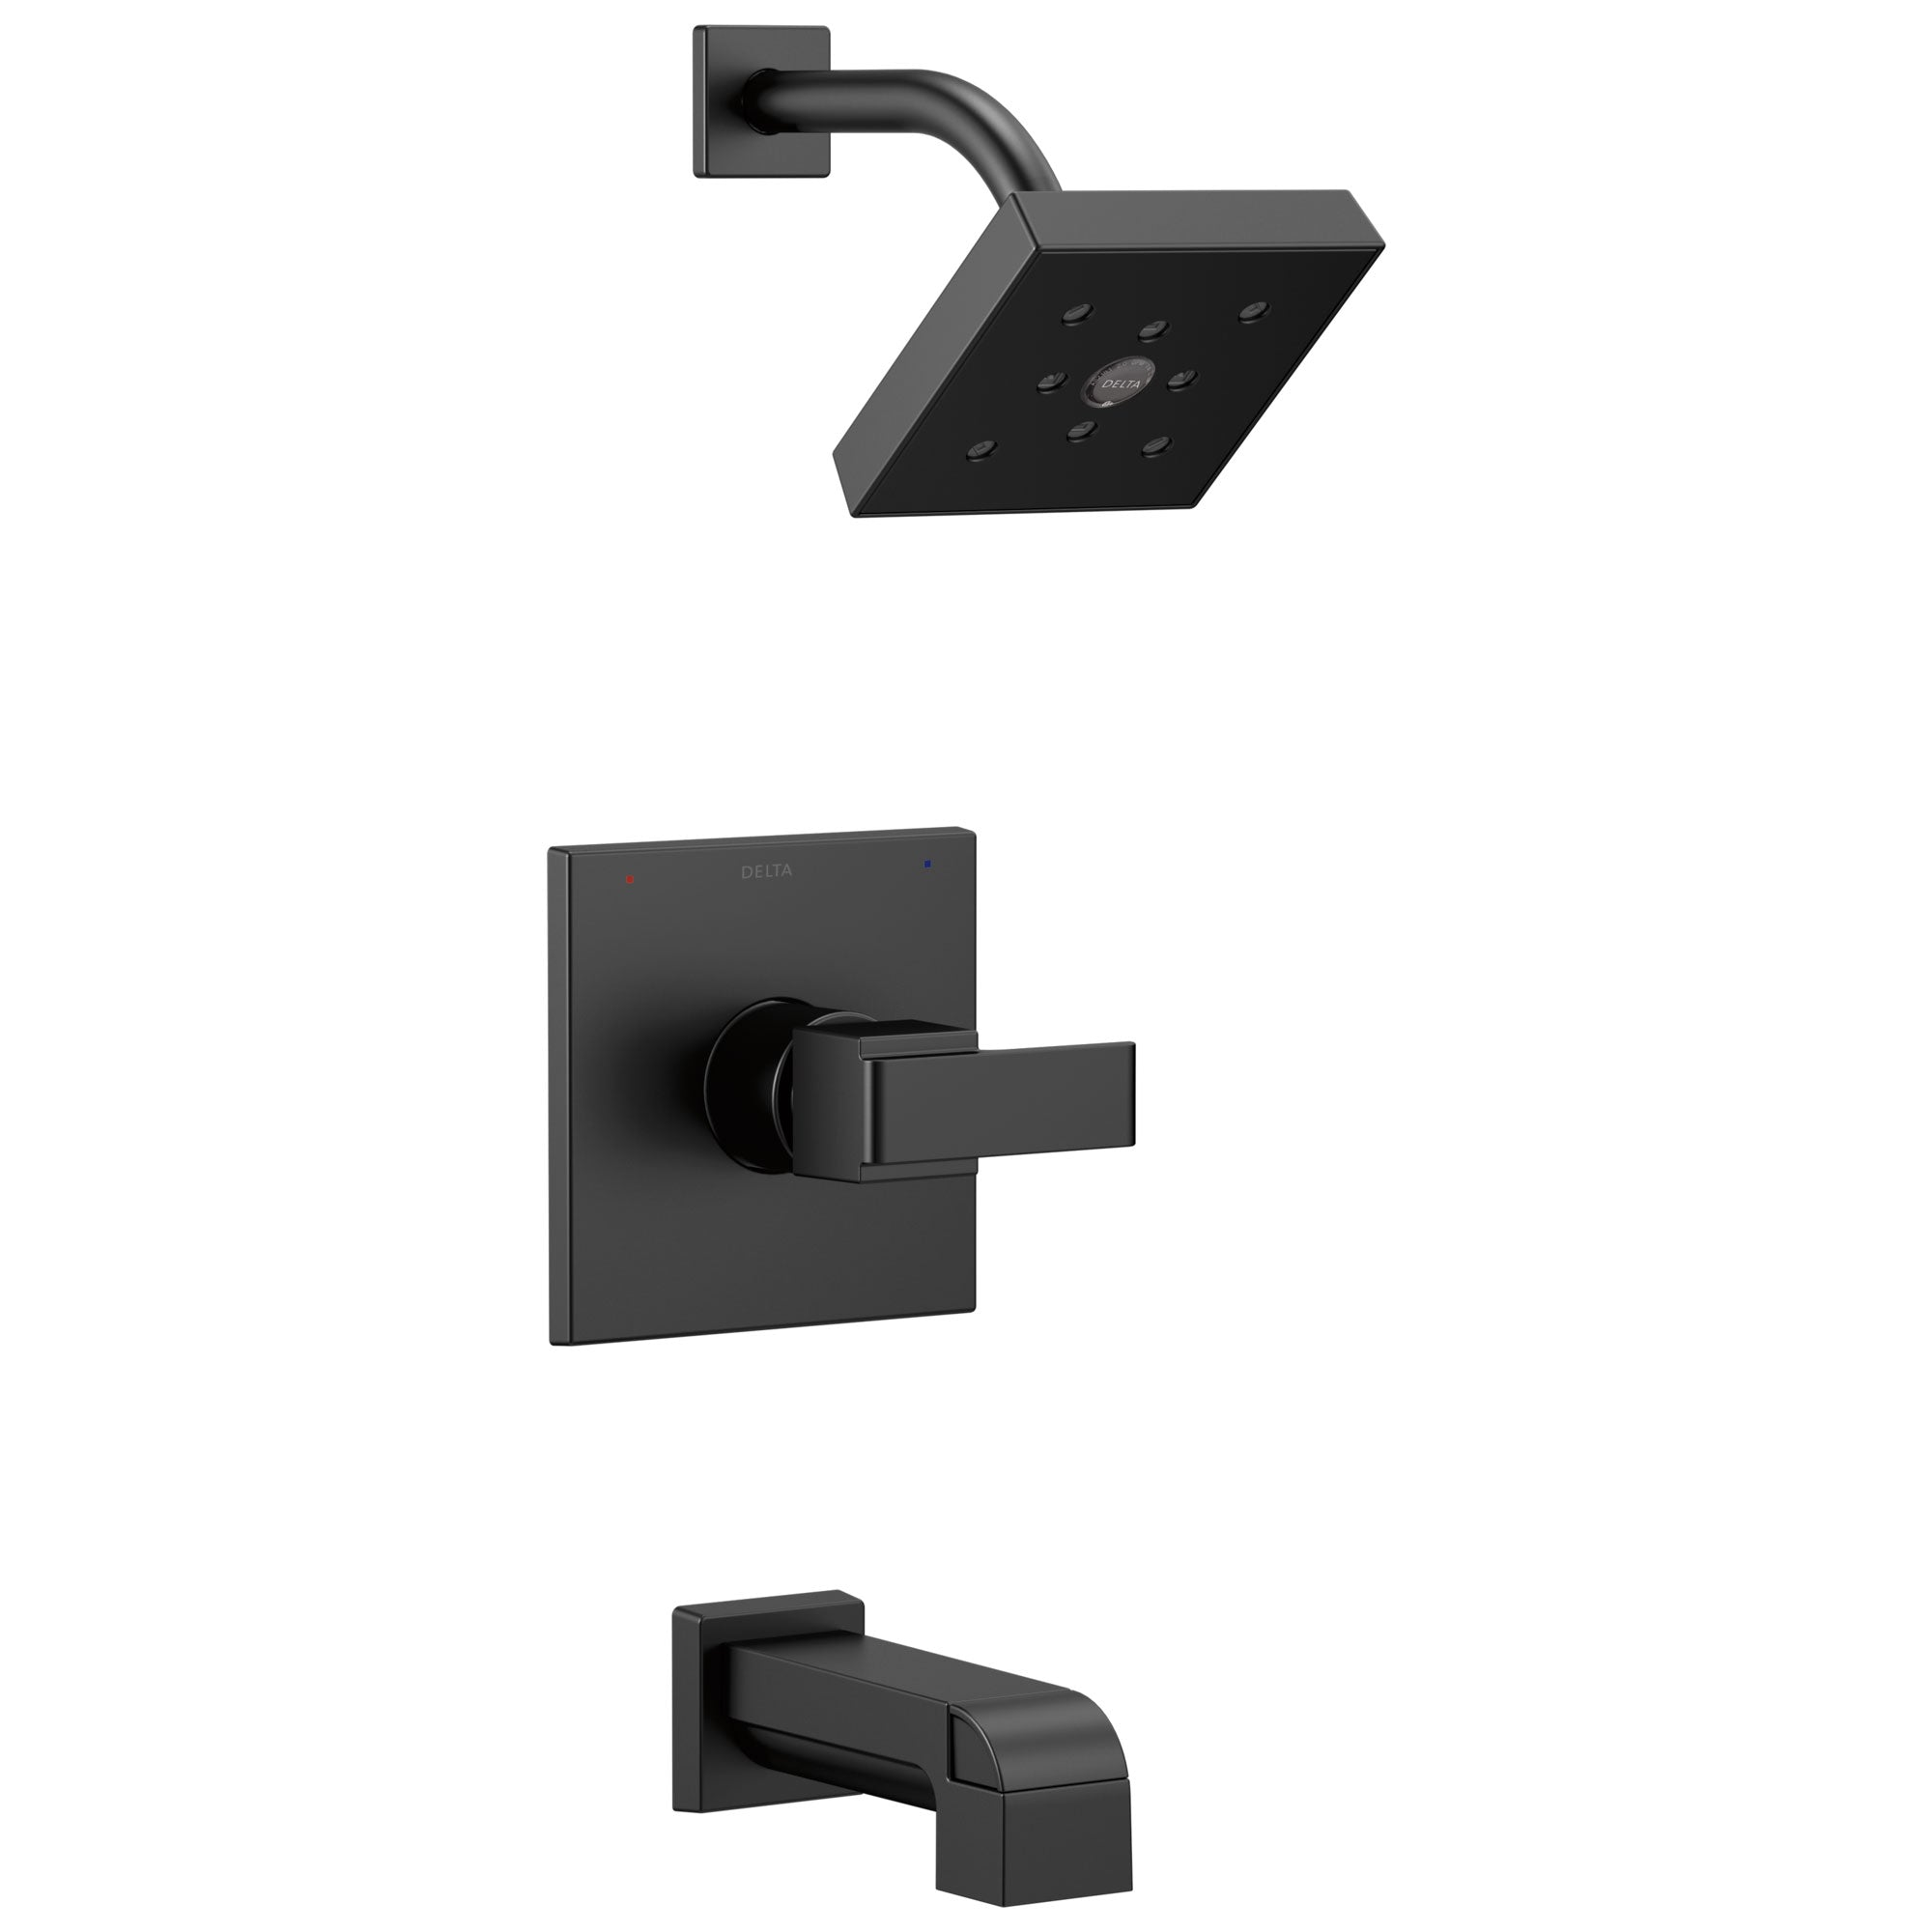 Delta Ara Collection Matte Black Finish Monitor 14 Watersense Modern Square Lever Handle Tub and Shower Combo Faucet Includes Valve with Stops D2384V